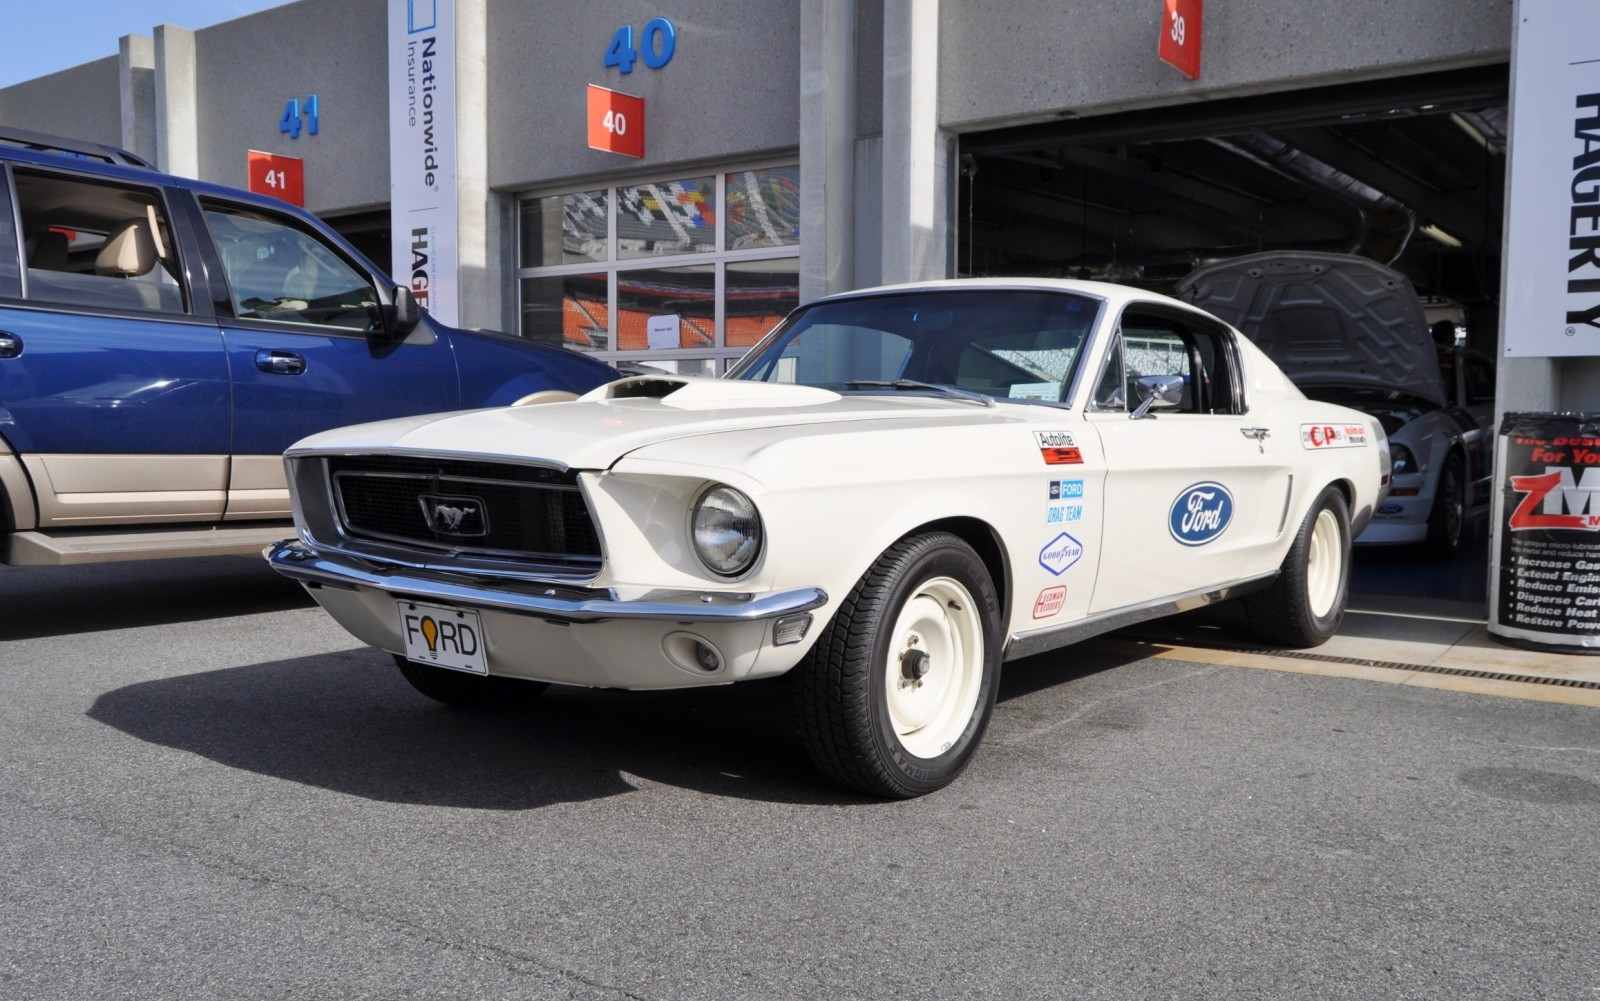 1968 Ford Drag Team - Mustang 428 Cobra Jet 8